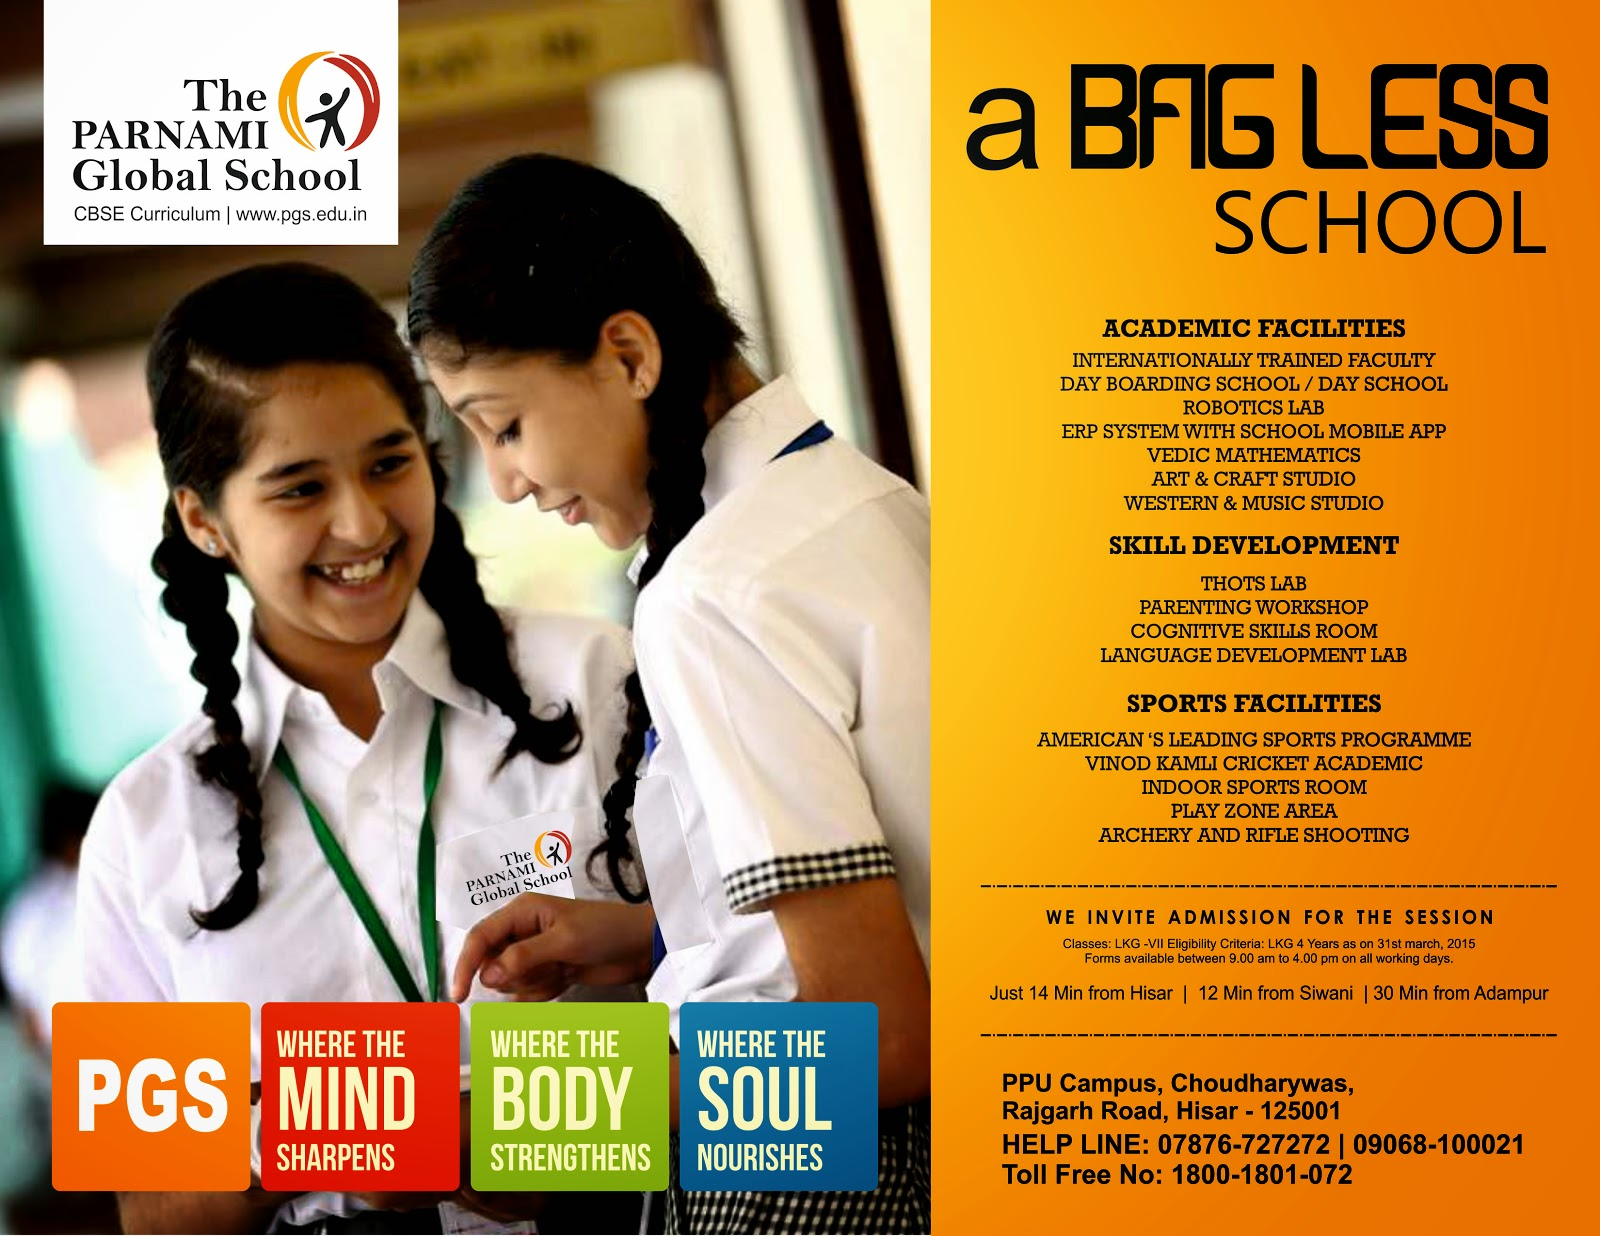 Poster design ideas for school - School Admission Leaflet Design Idea By Sample Designer World